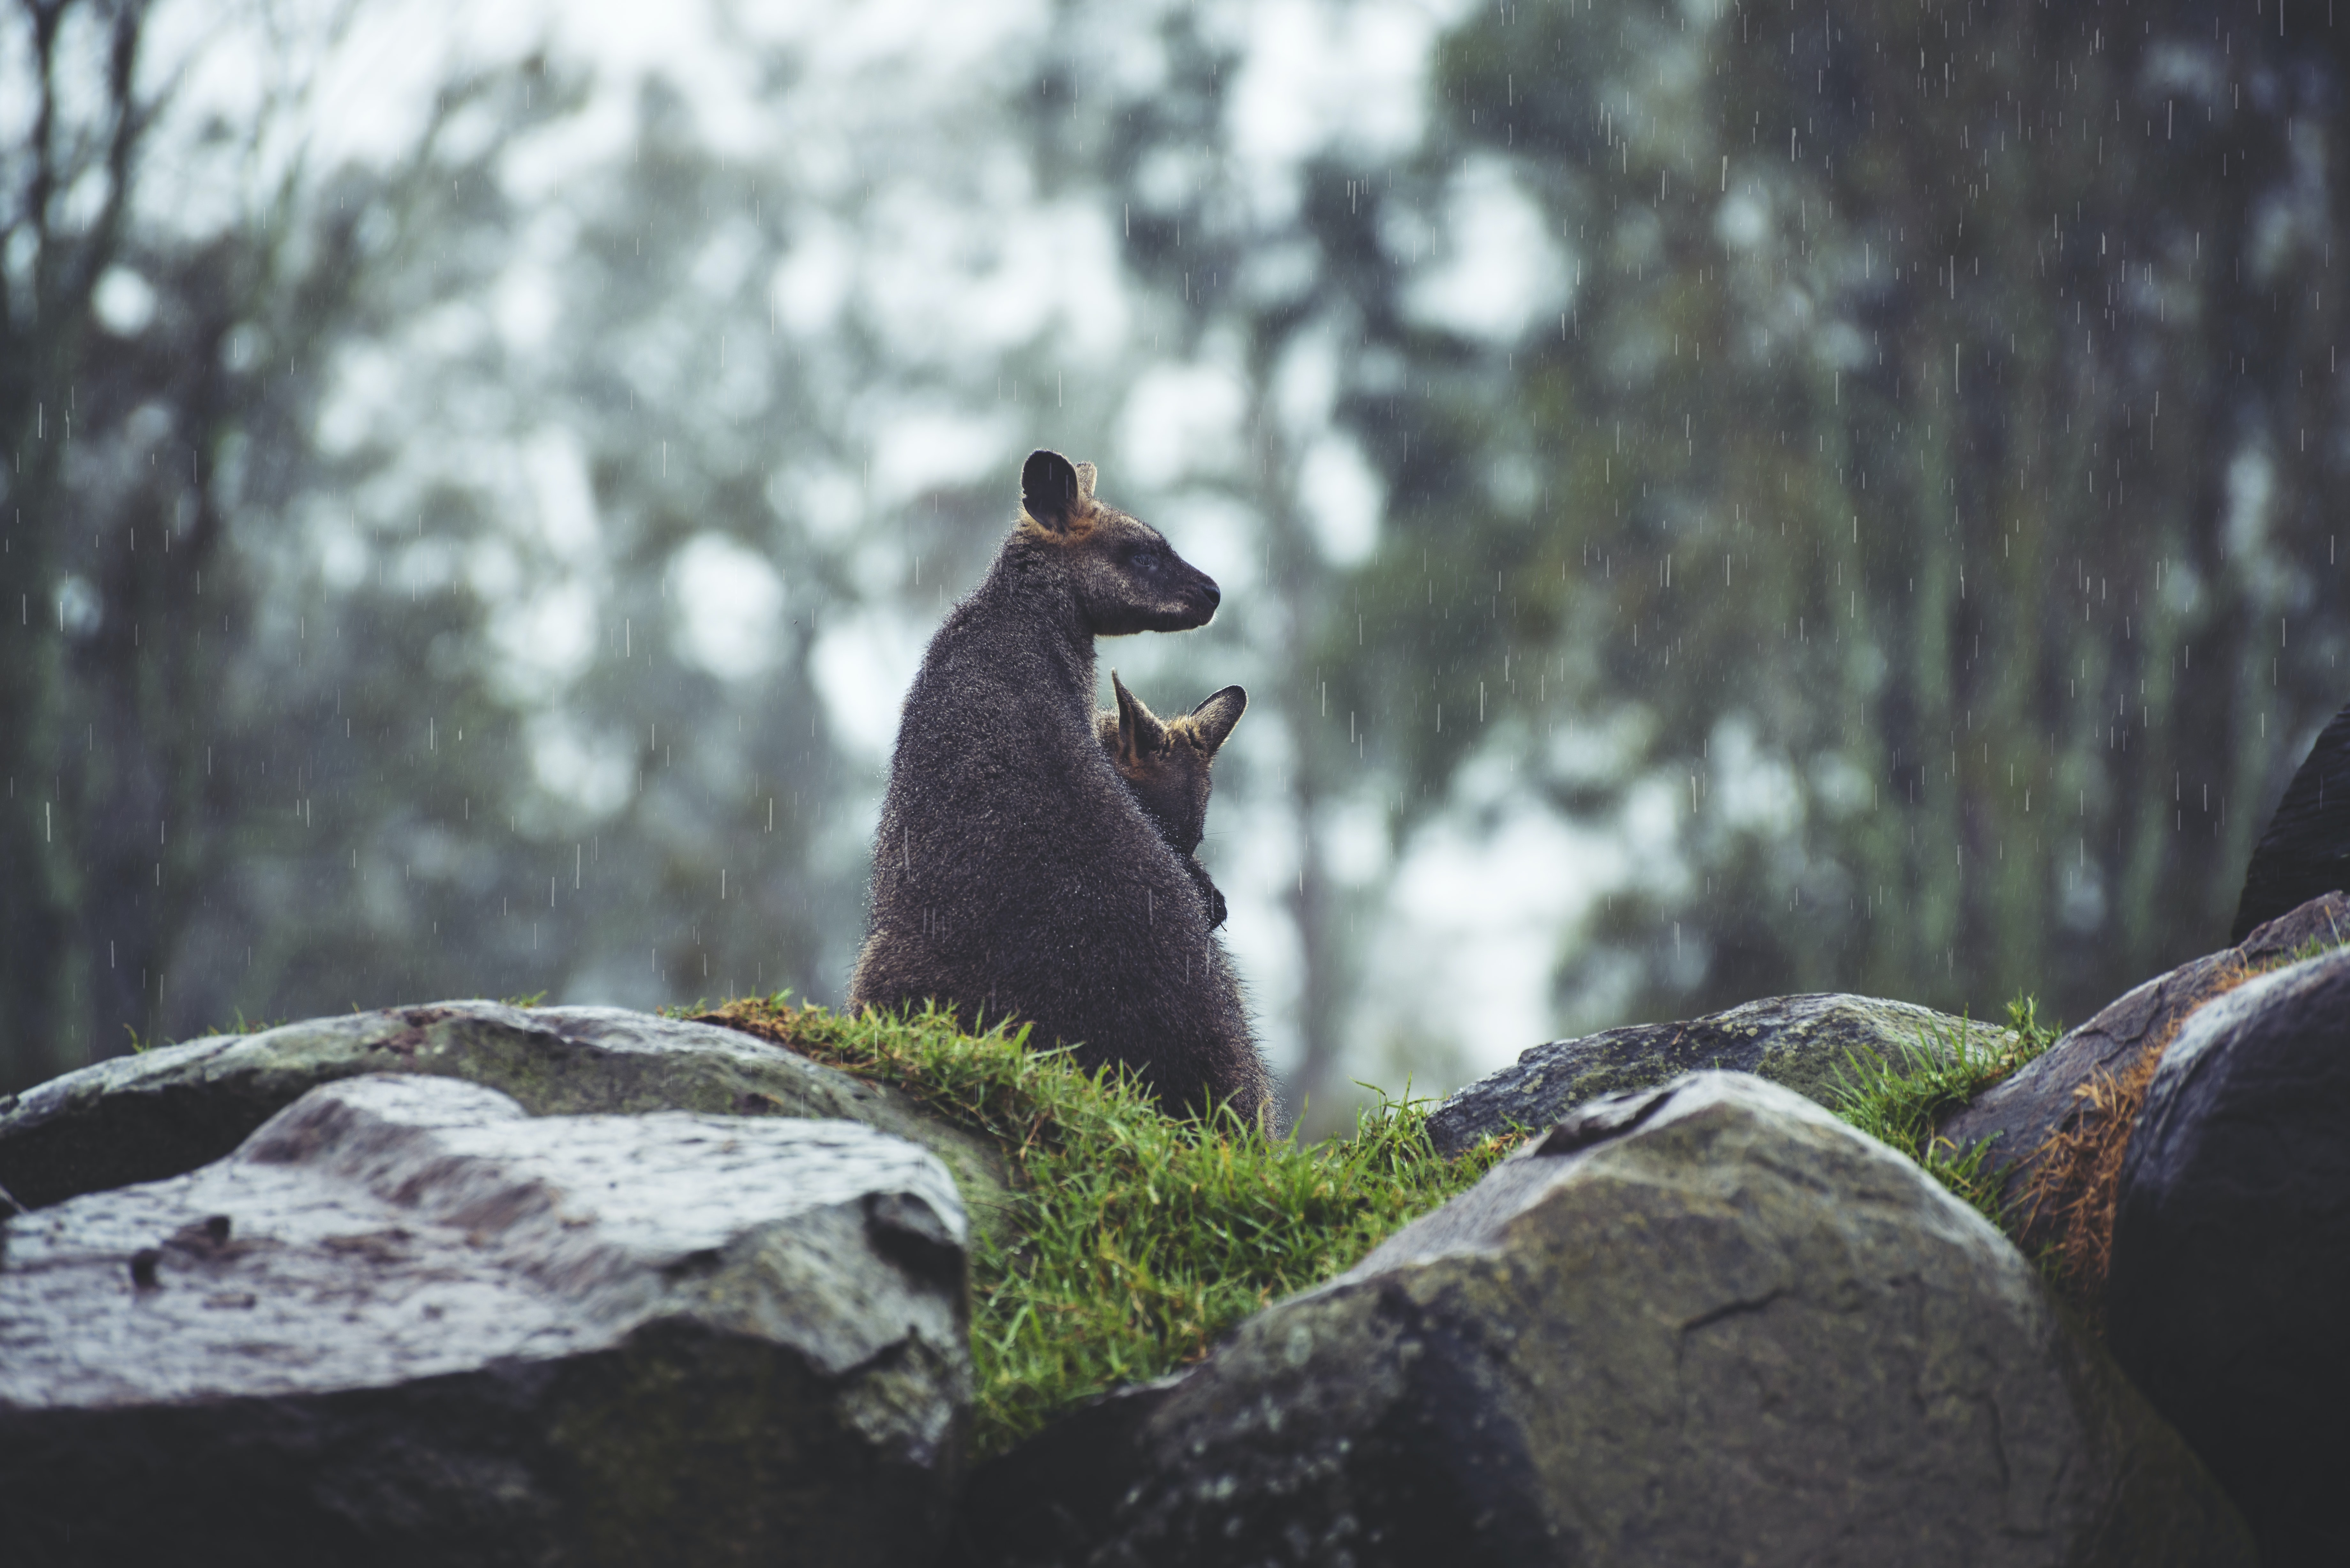 A kangaroo mama and joey are snuggled close on a rocky ledge under light rain